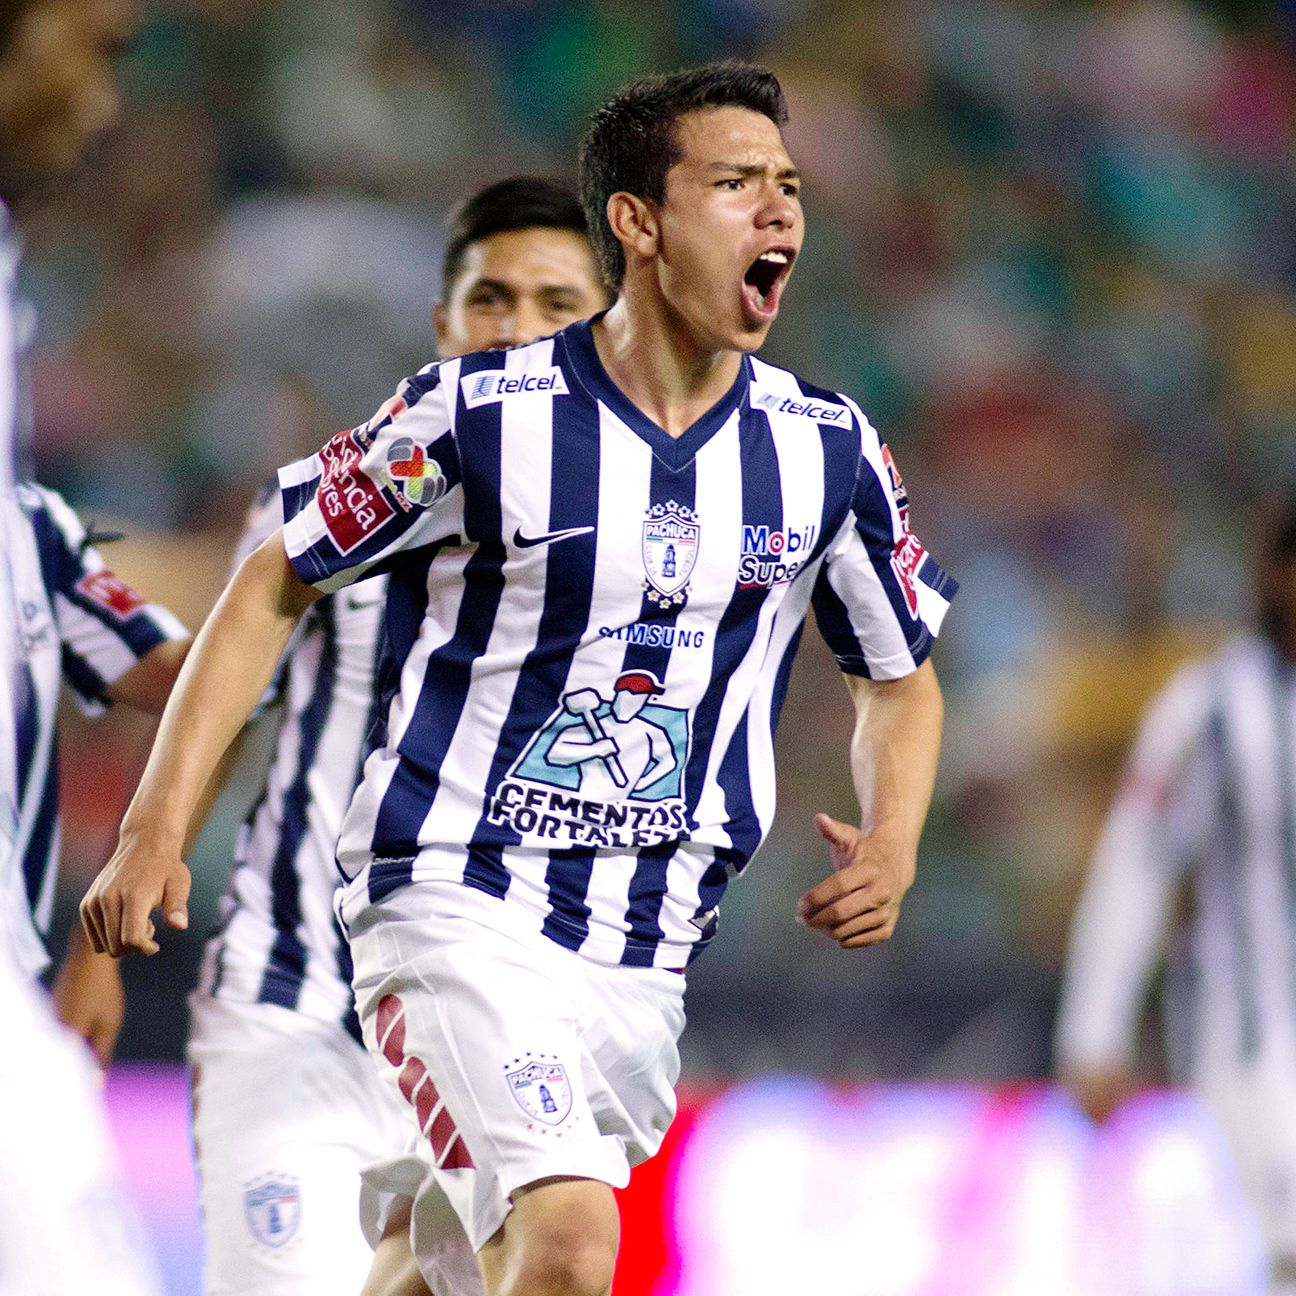 Hirving Lozano and Pachuca are trying to make sure that Liga MX's reign over MLS teams in the CONCACAF Champions League does not come to an end.